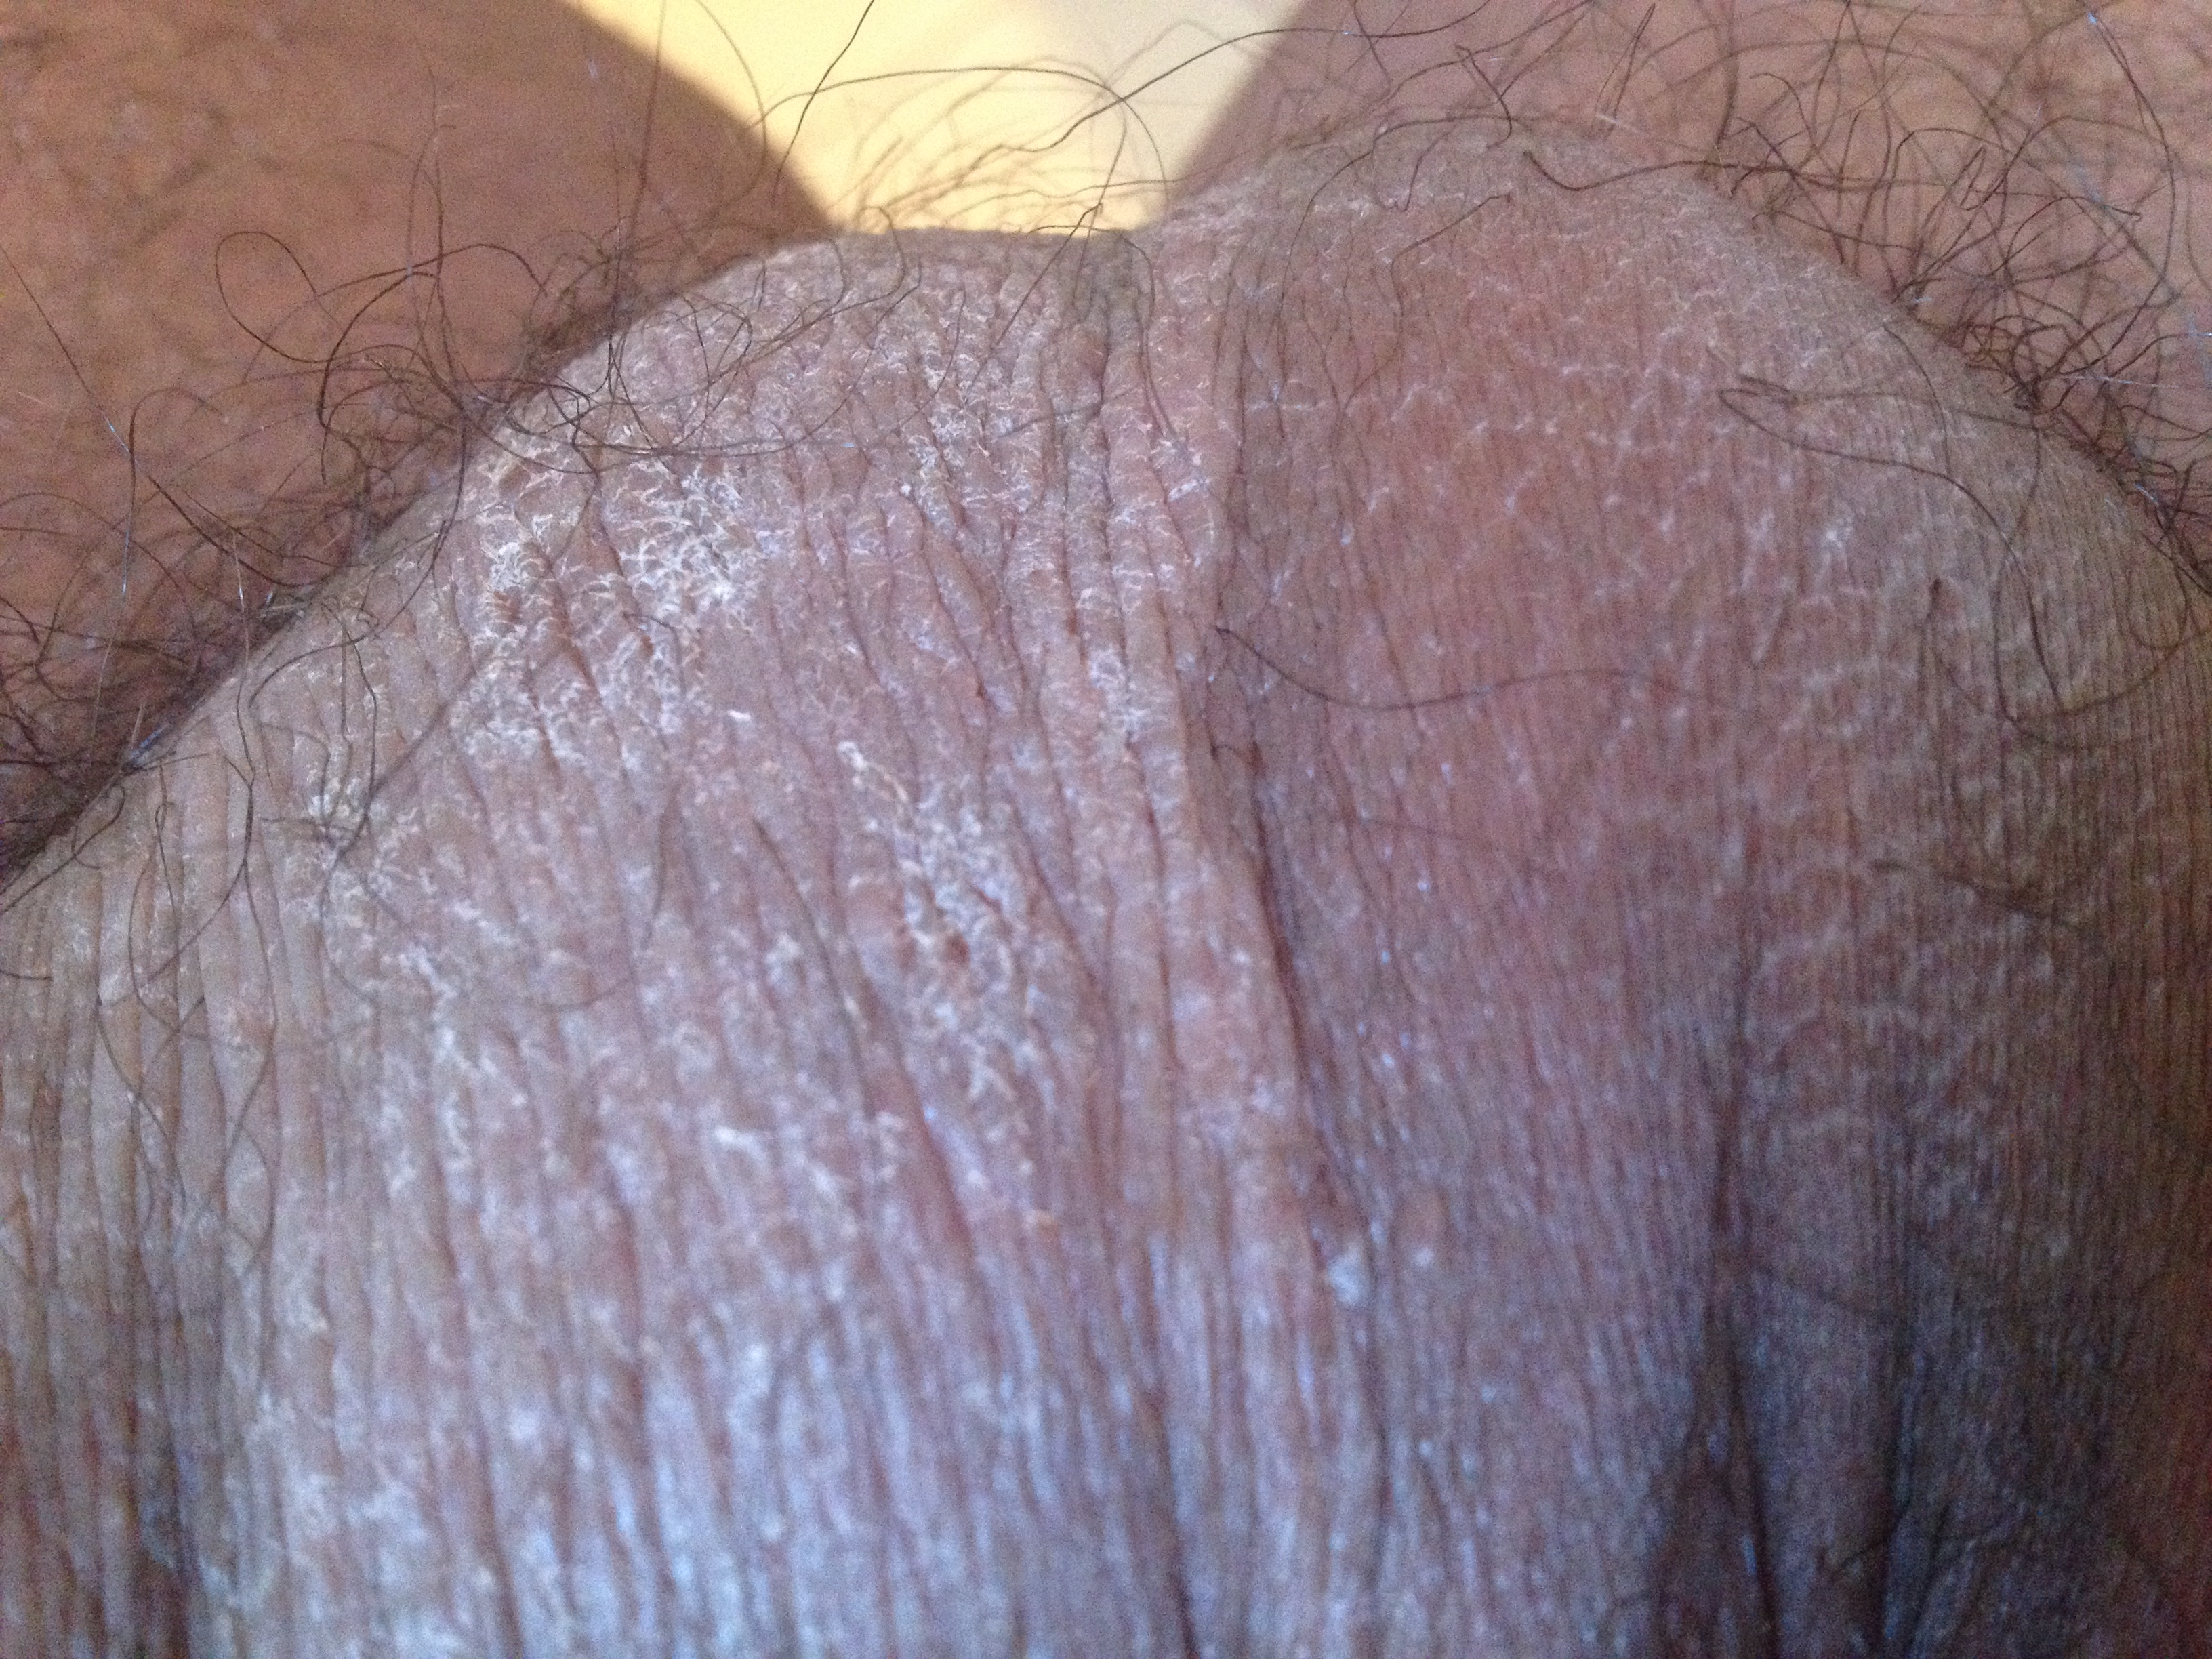 Eczema On Scrotum – images free download